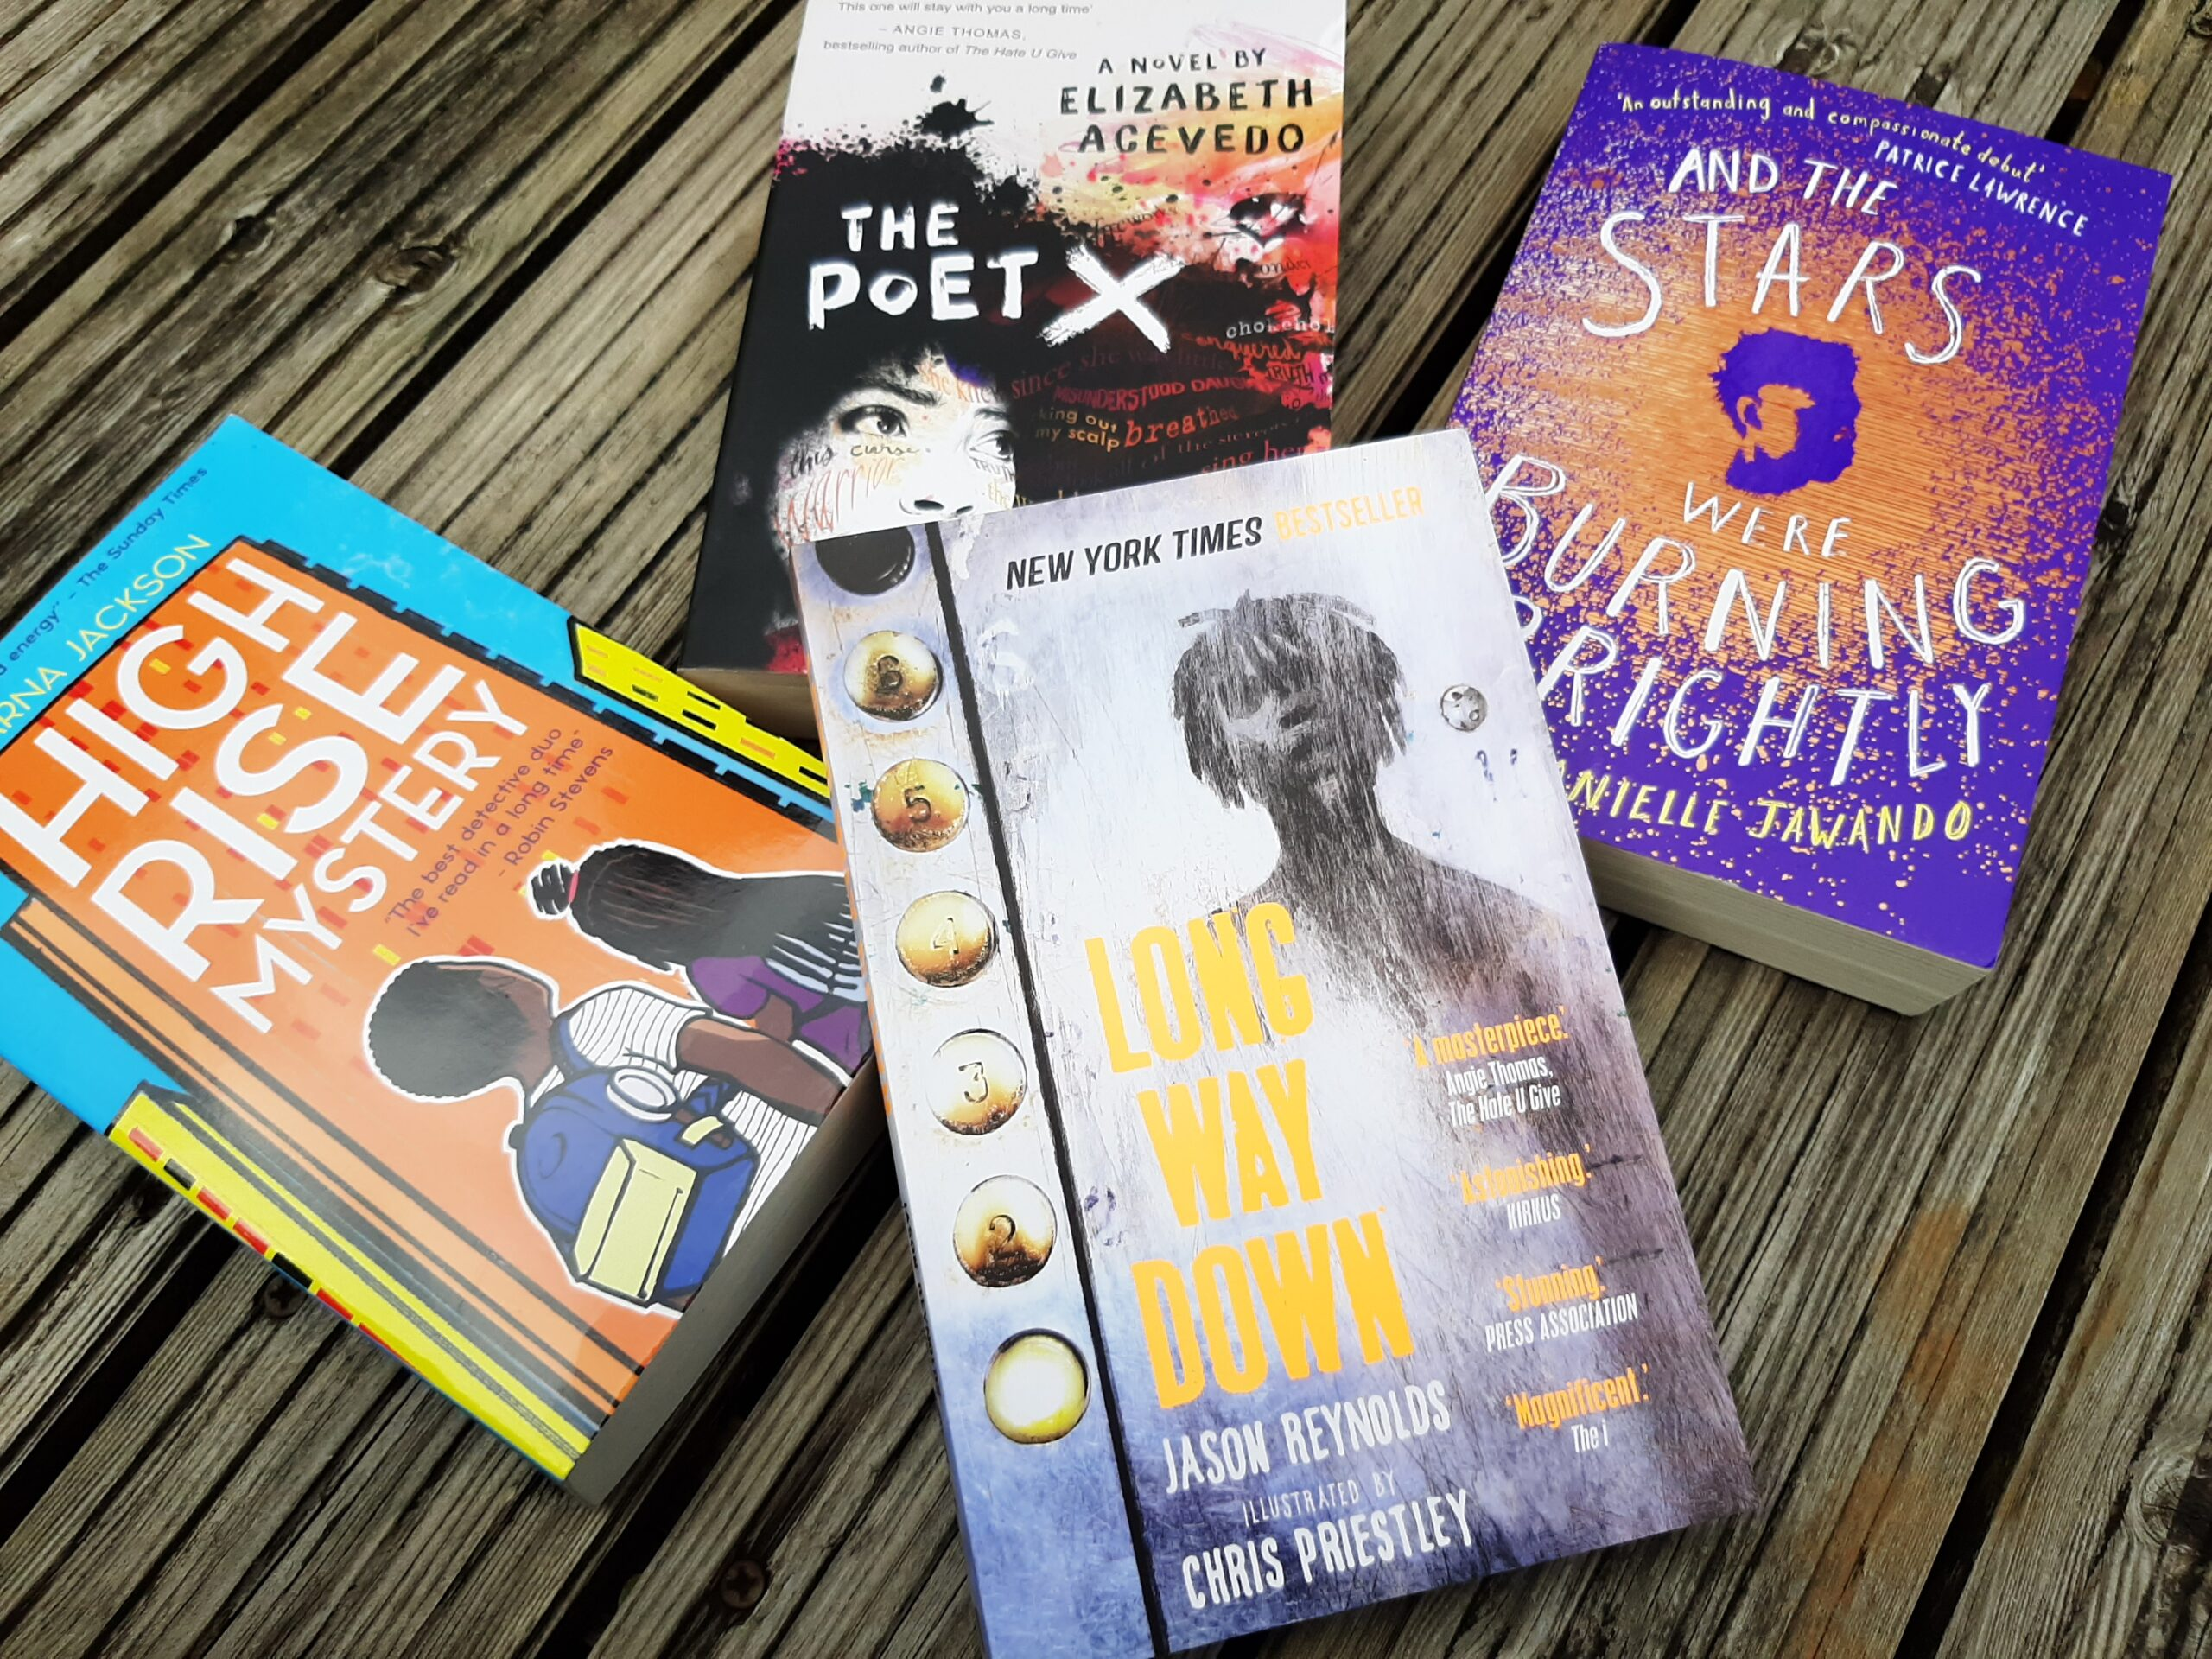 4 children's/YA novels, Long Way Down, And the Stars Were Burning Brightly, The Poet X and High Rise Mystery